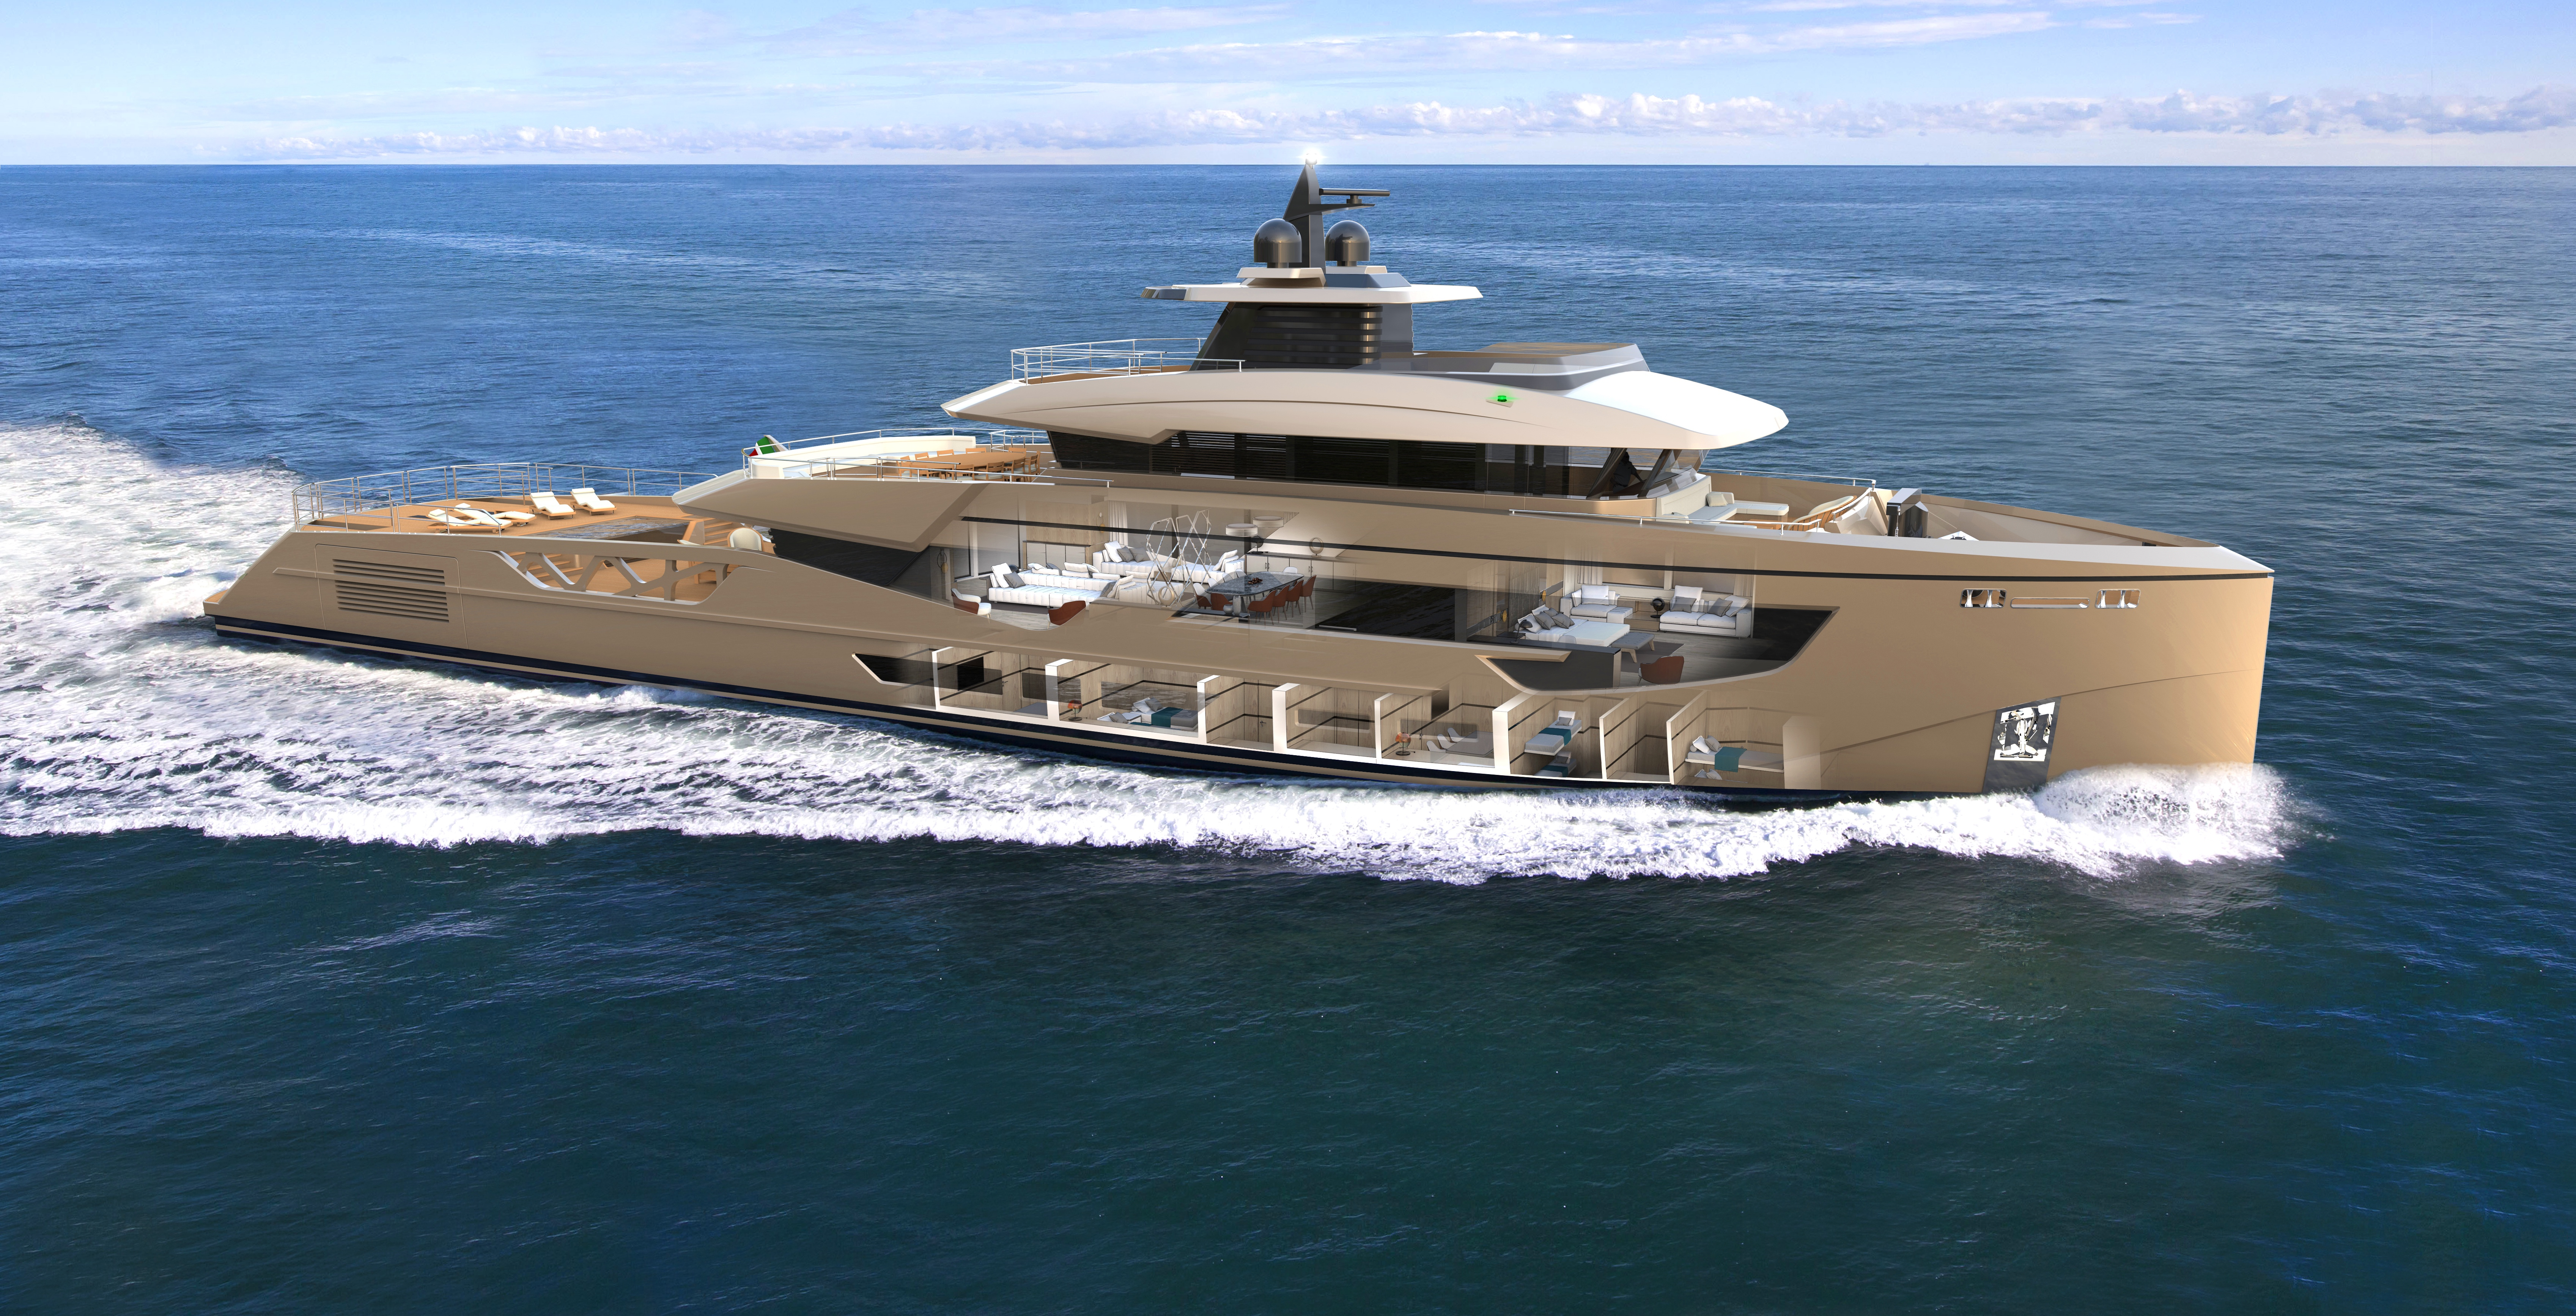 New details about Rosetti 52m Supply Vessel Yacht - Yacht Harbour